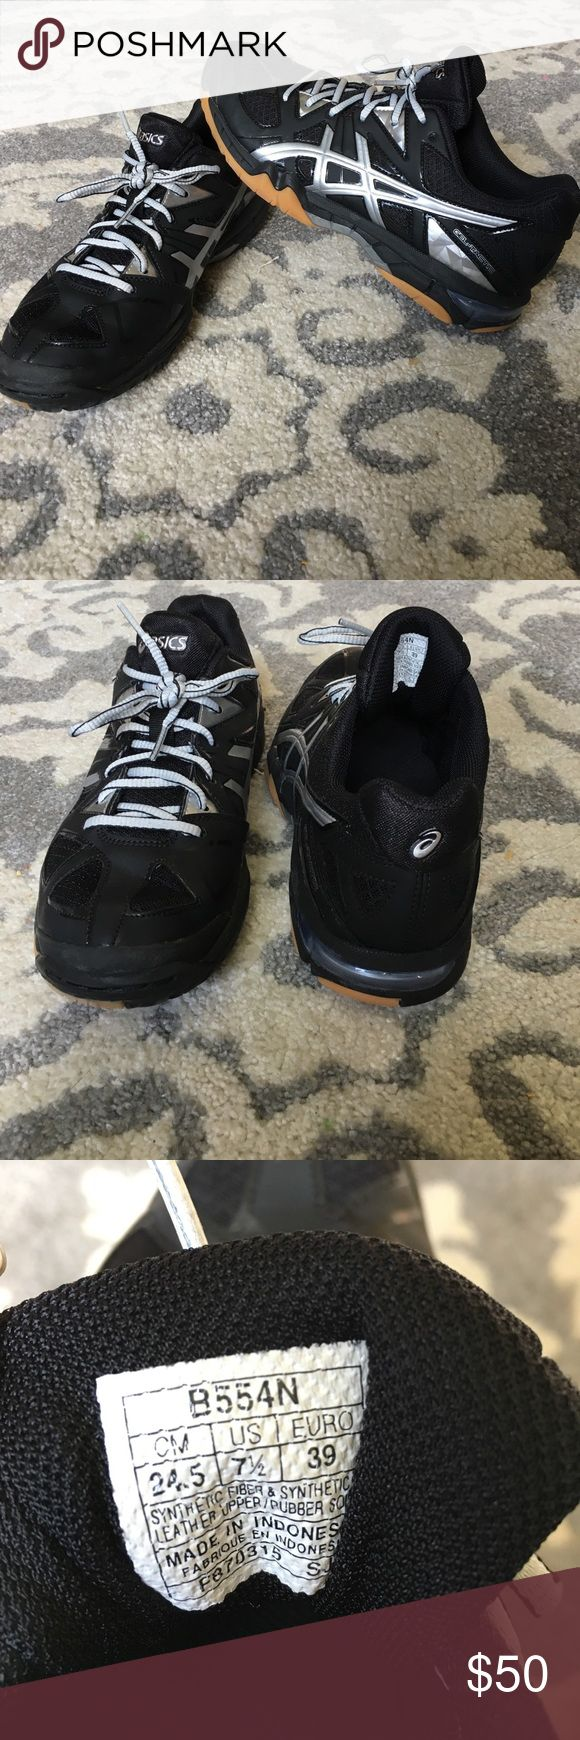 Women's Asics Gel-Tactic Volleyball Court Shoes Brand new black and silver volleyball court shoes. Worn  only once. Asics Shoes Sneakers